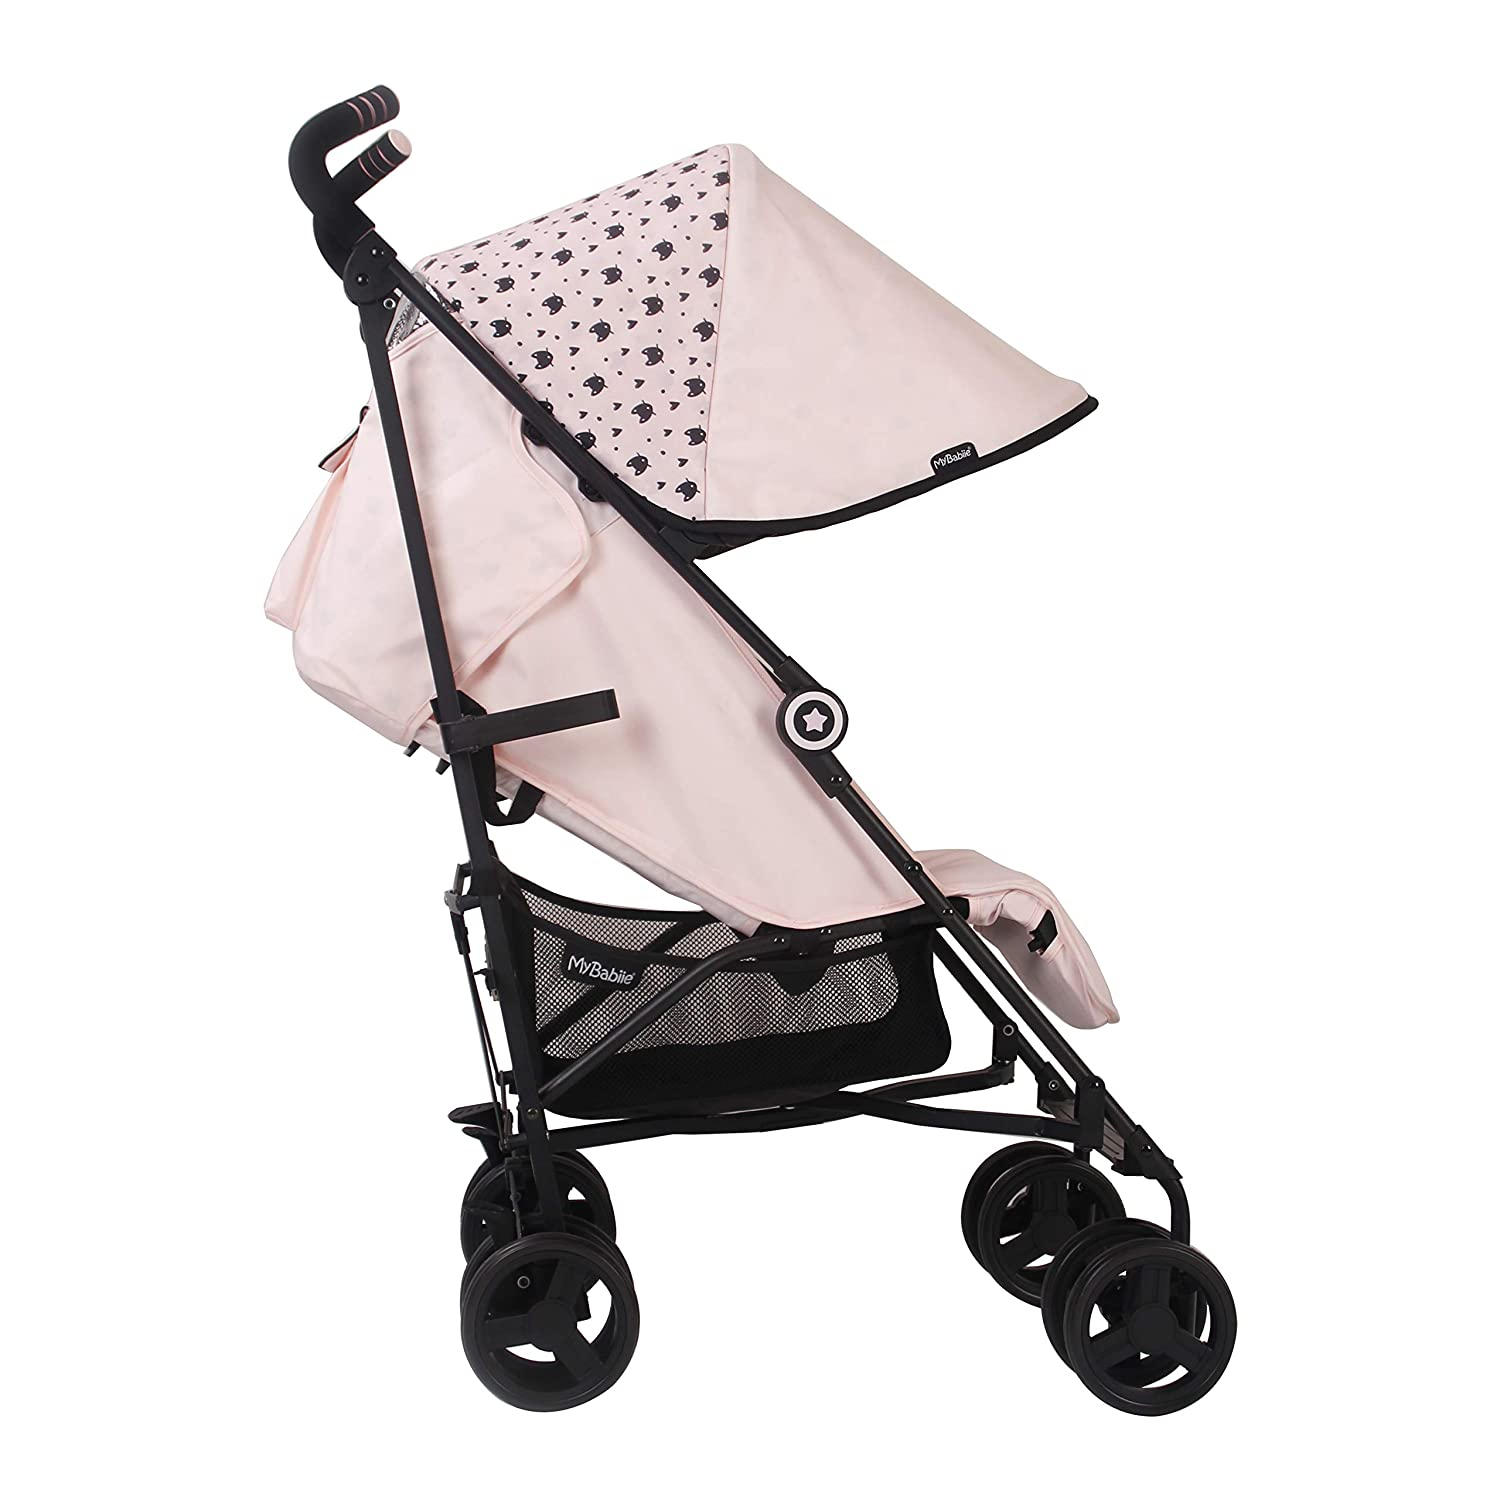 My Babiie US02 Black Cats Baby Stroller Lightweight Baby Stroller with Carry Handle Silver Frame and Black Cats Lightweight Travel Stroller Suitable from Birth up to 33 lbs